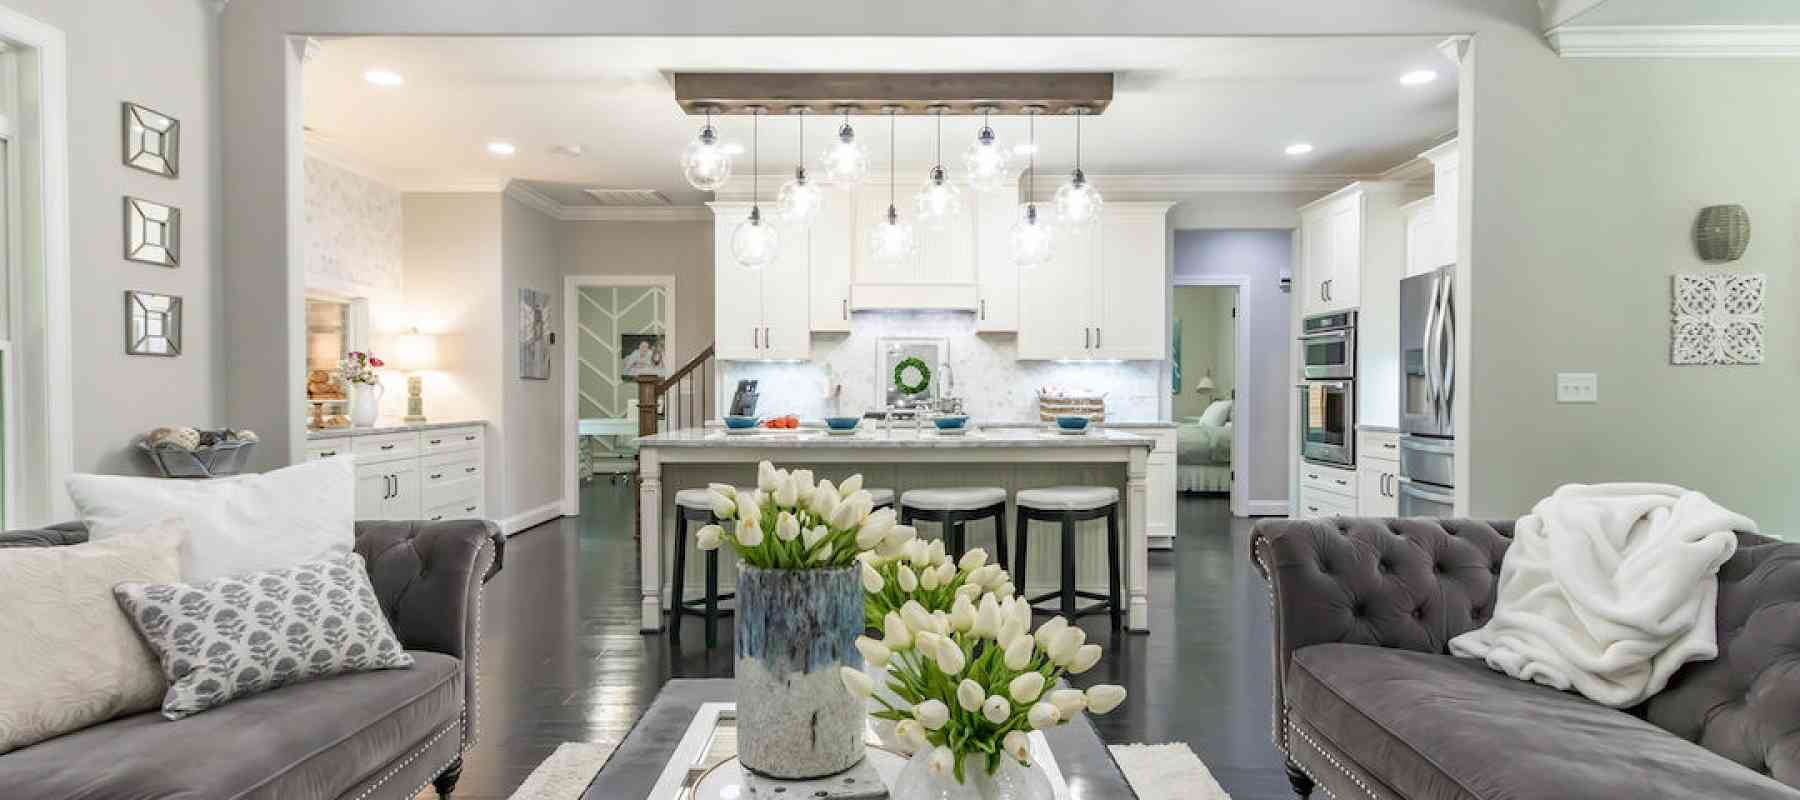 Design Trends for Home Remodeling